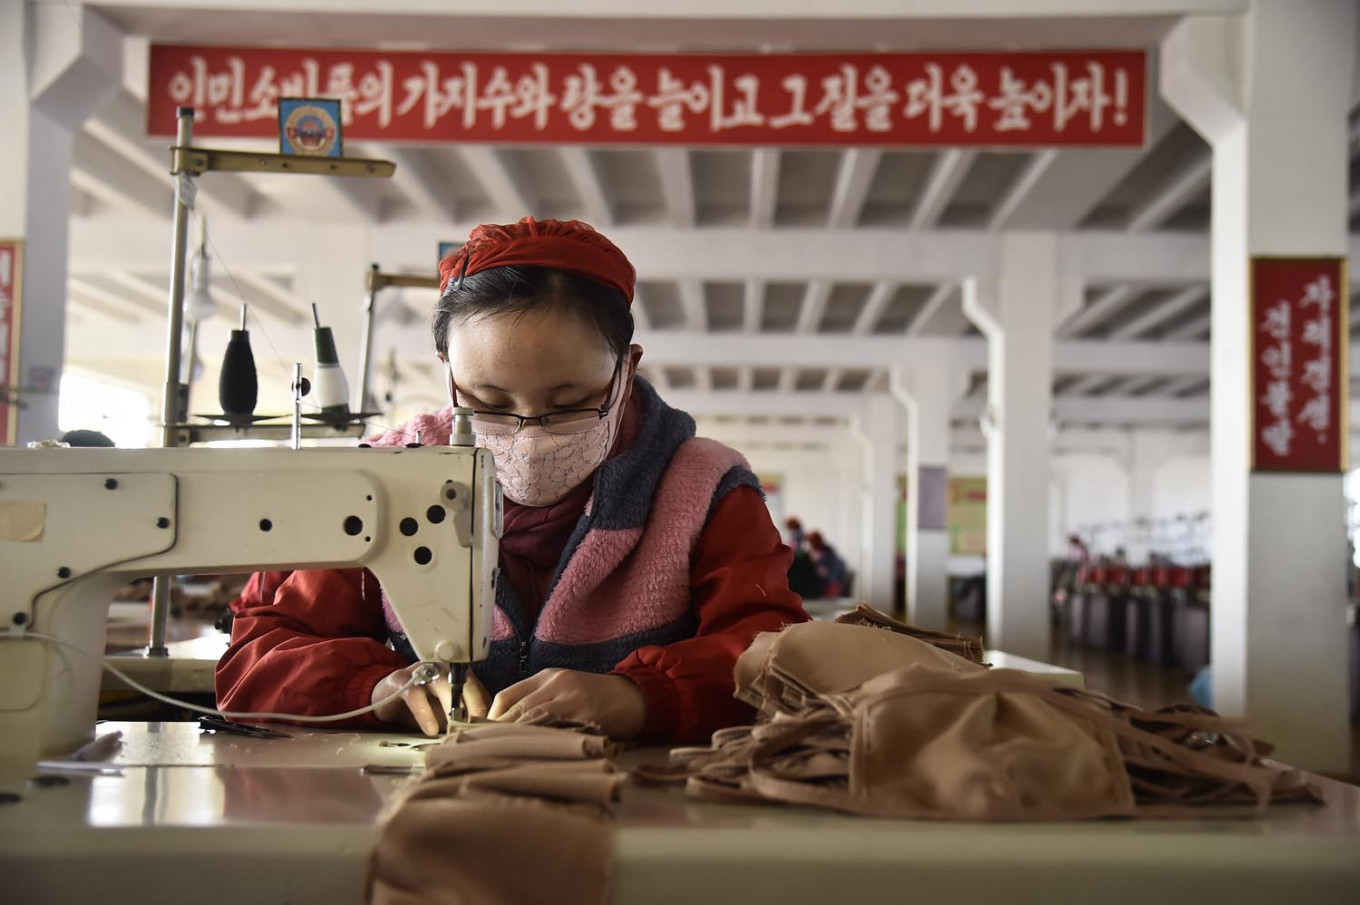 China says manufacturing activity expanded in March, defying expectations of a contraction